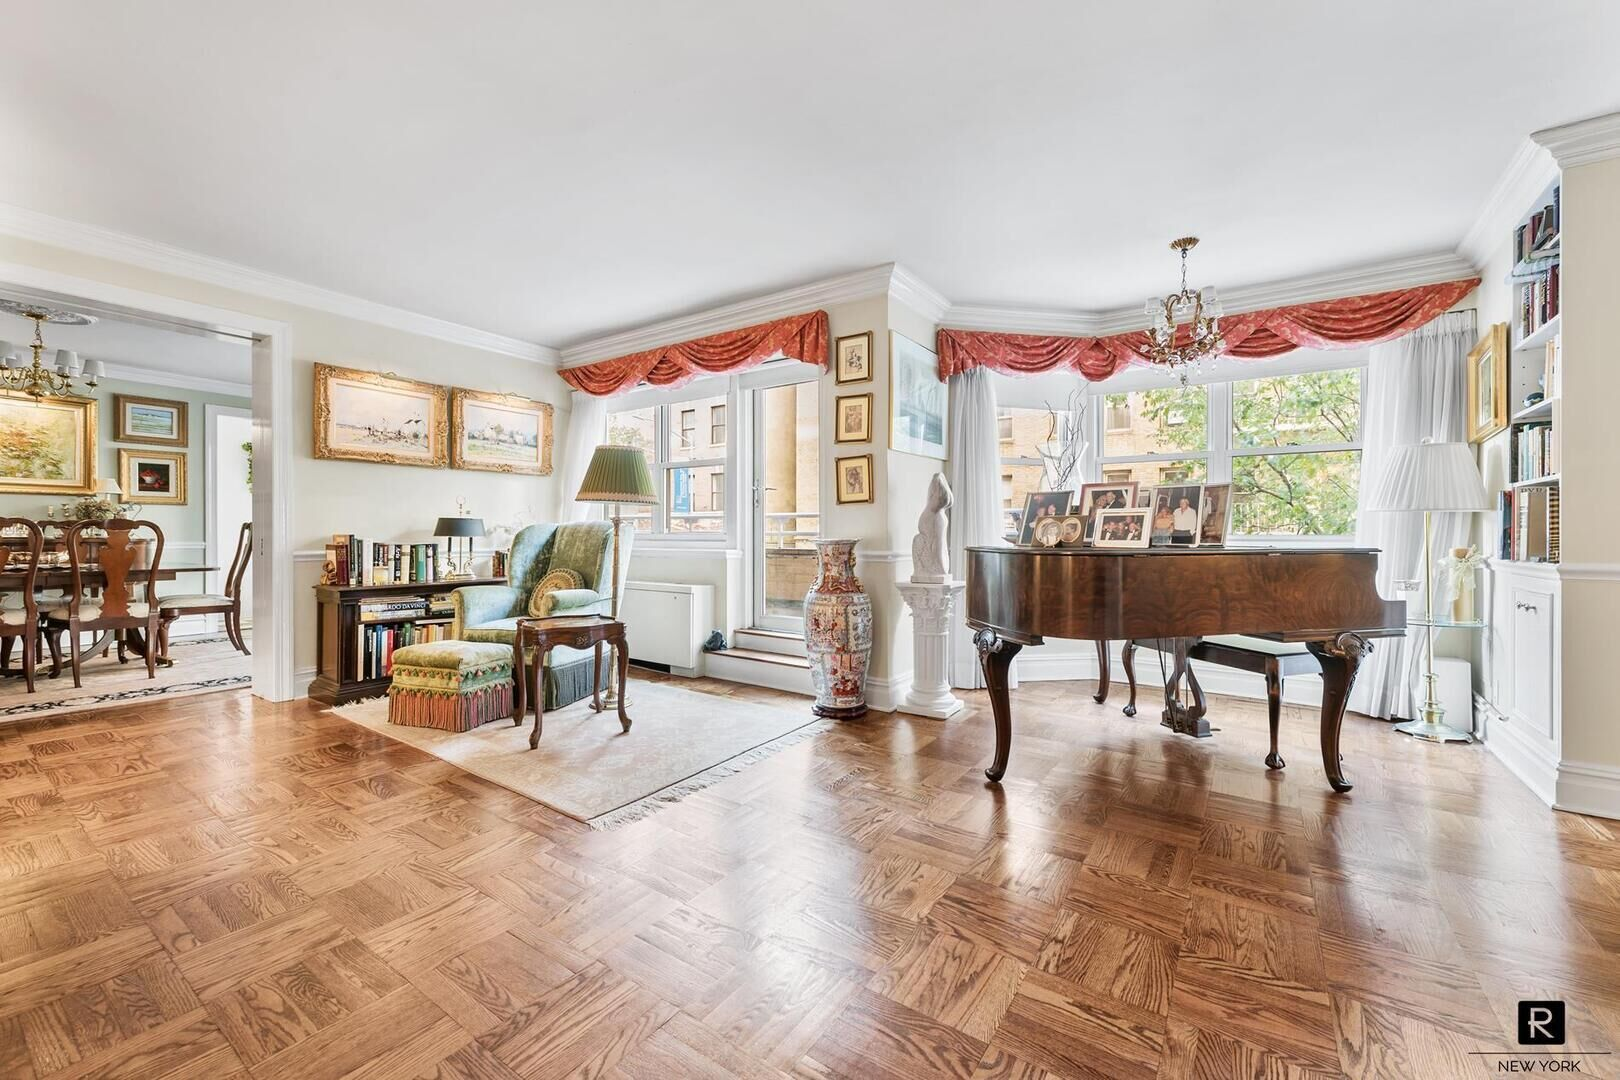 Apartment for sale at 205 East 63rd Street, Apt 2-CD